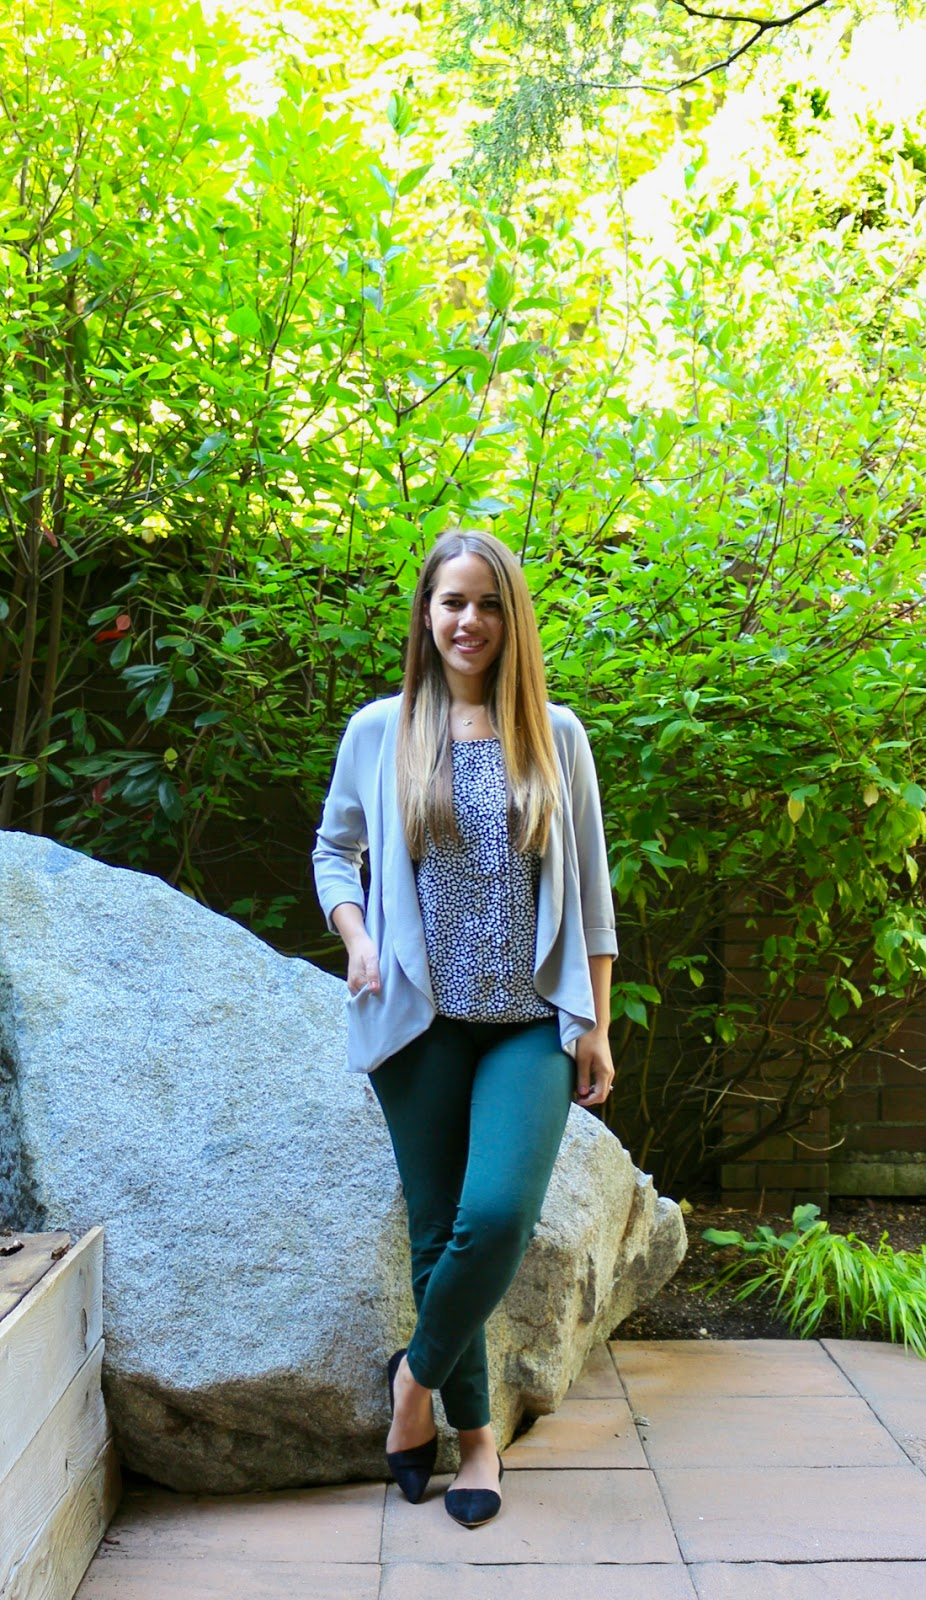 Jules in Flats - Heart Print Tank with Green Ankle Pants (Business Casual Spring Workwear on a Budget)